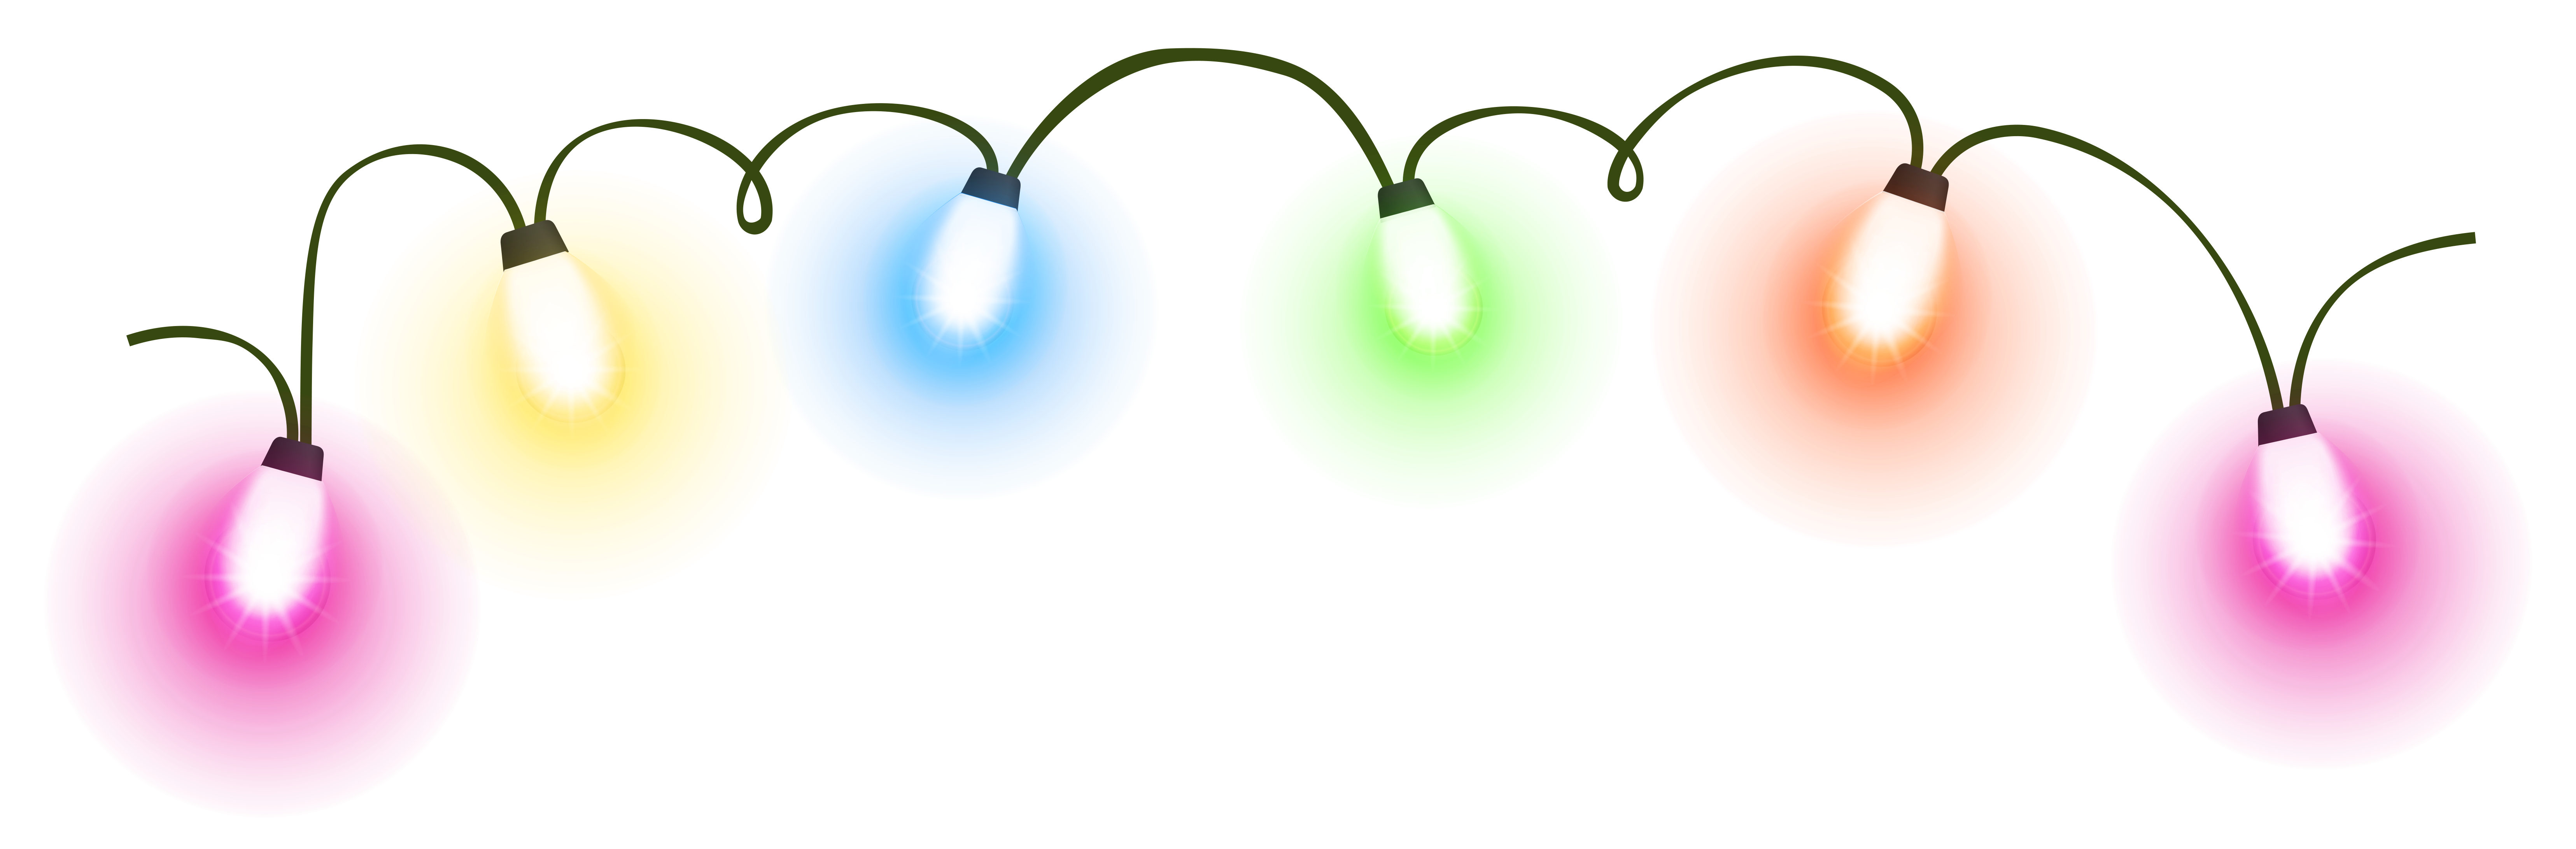 Christmas lights .png. Transparent png clipart pictures